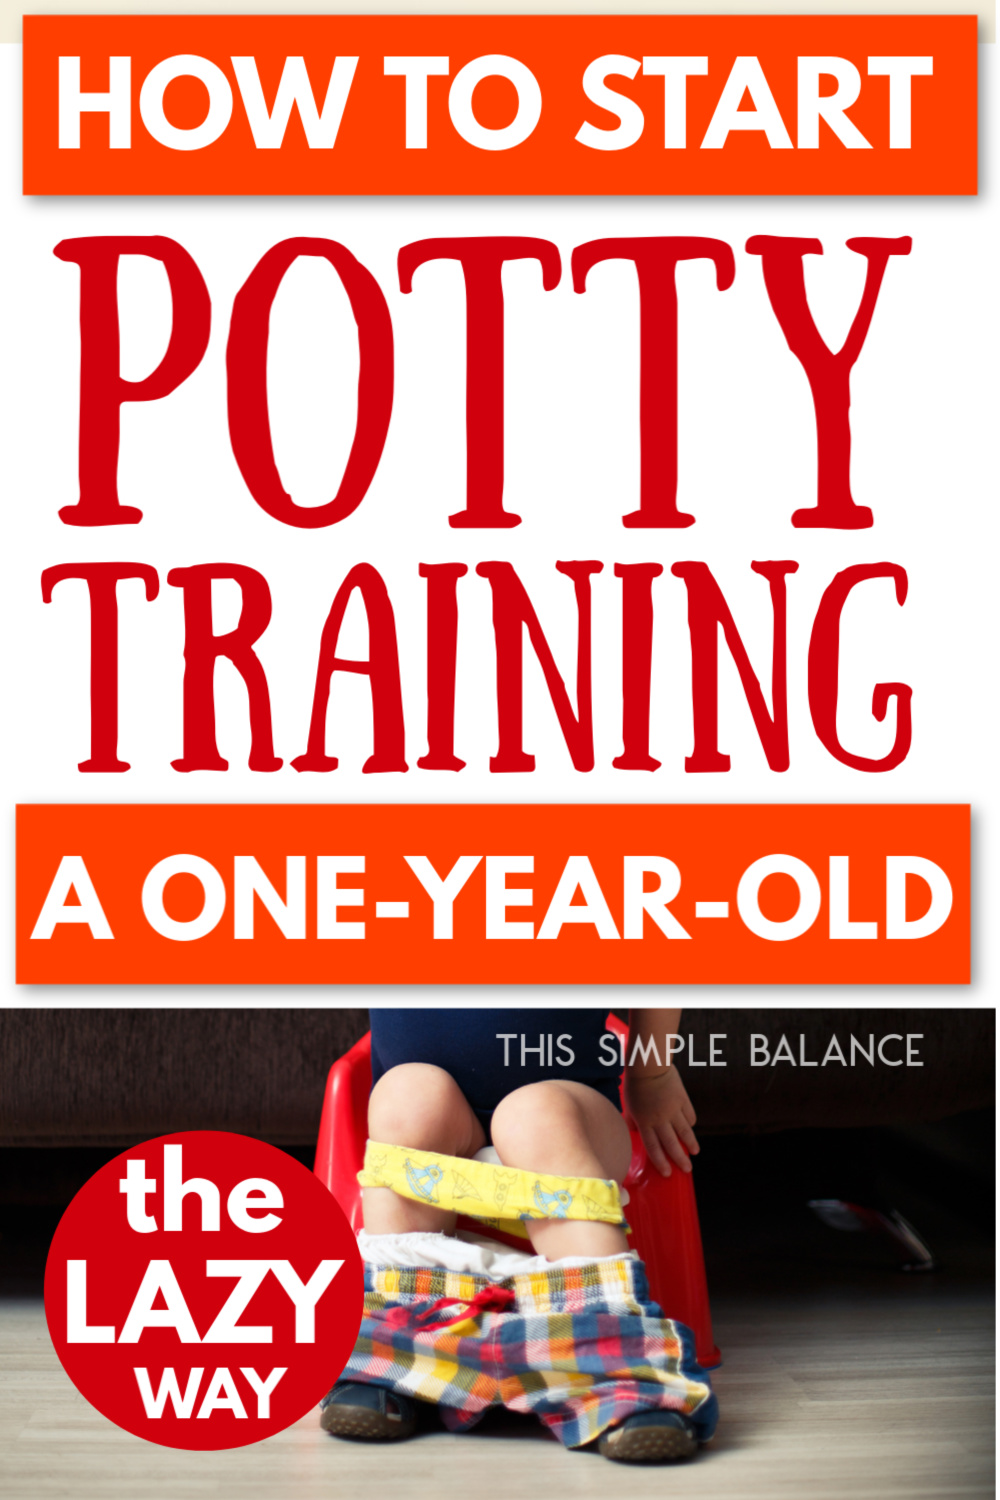 one-year-old potty training